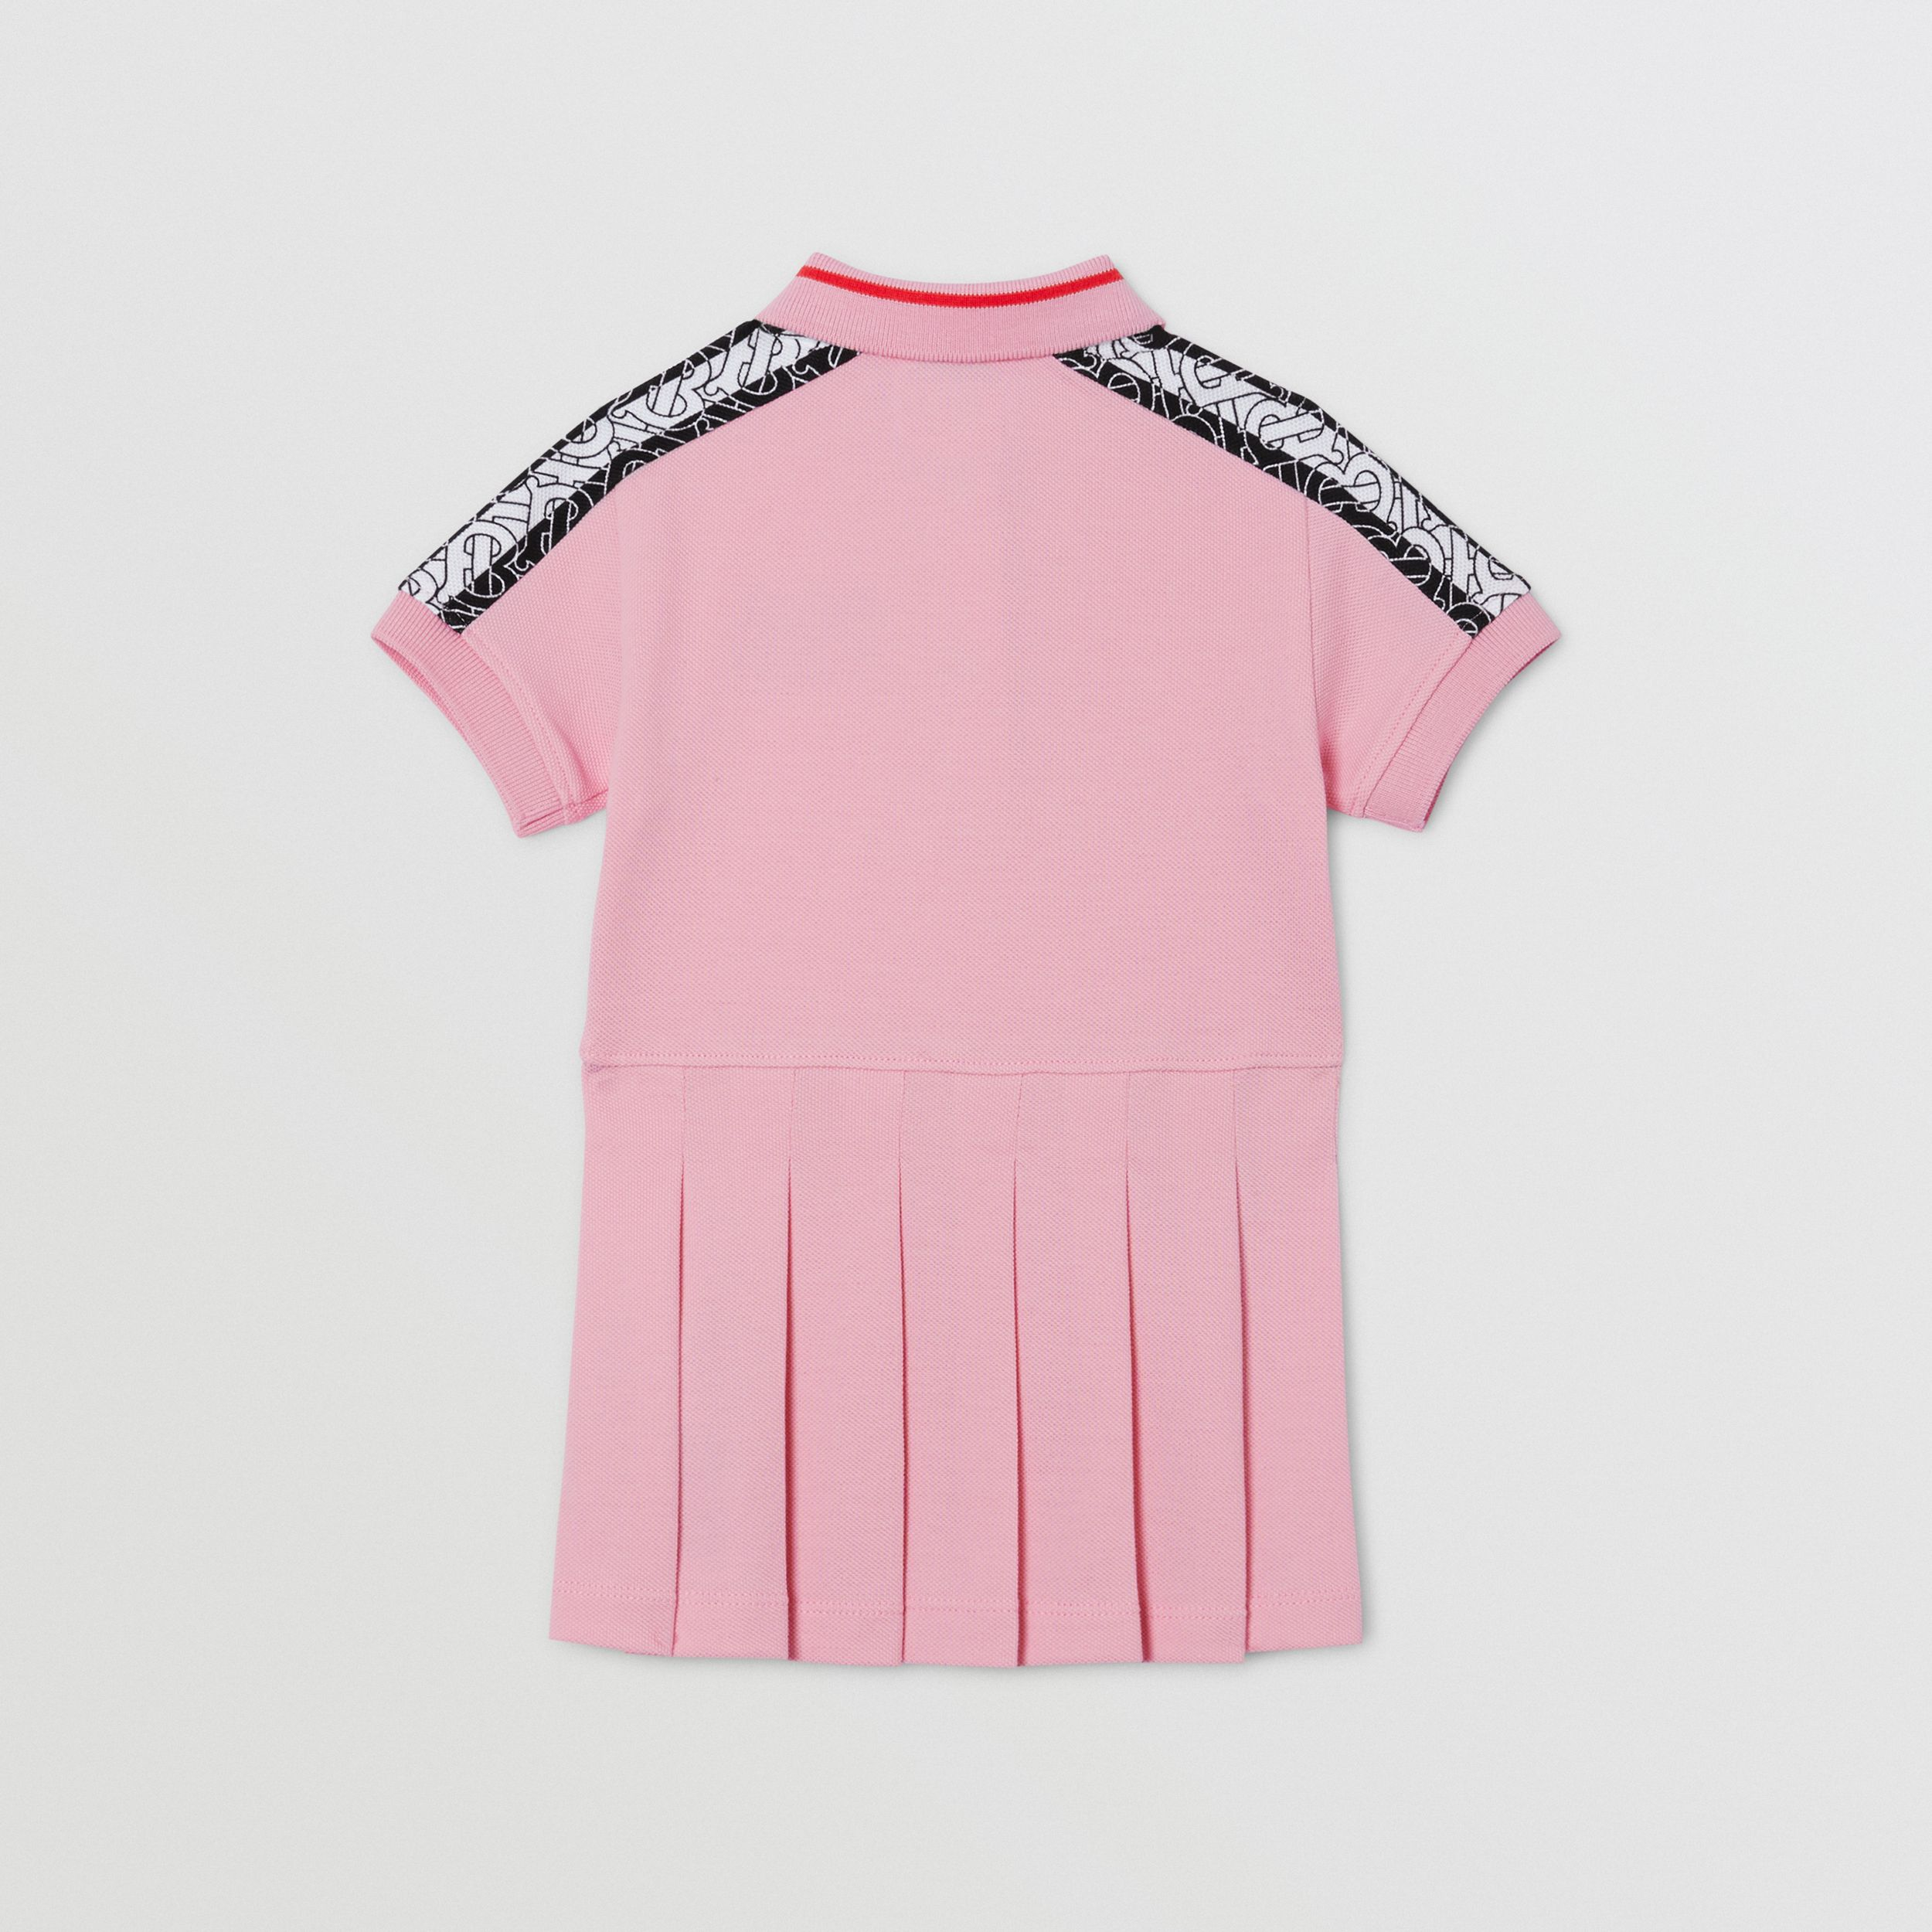 Monogram Stripe Print Cotton Piqué Polo Shirt Dress in Candy Pink - Children | Burberry Canada - 4